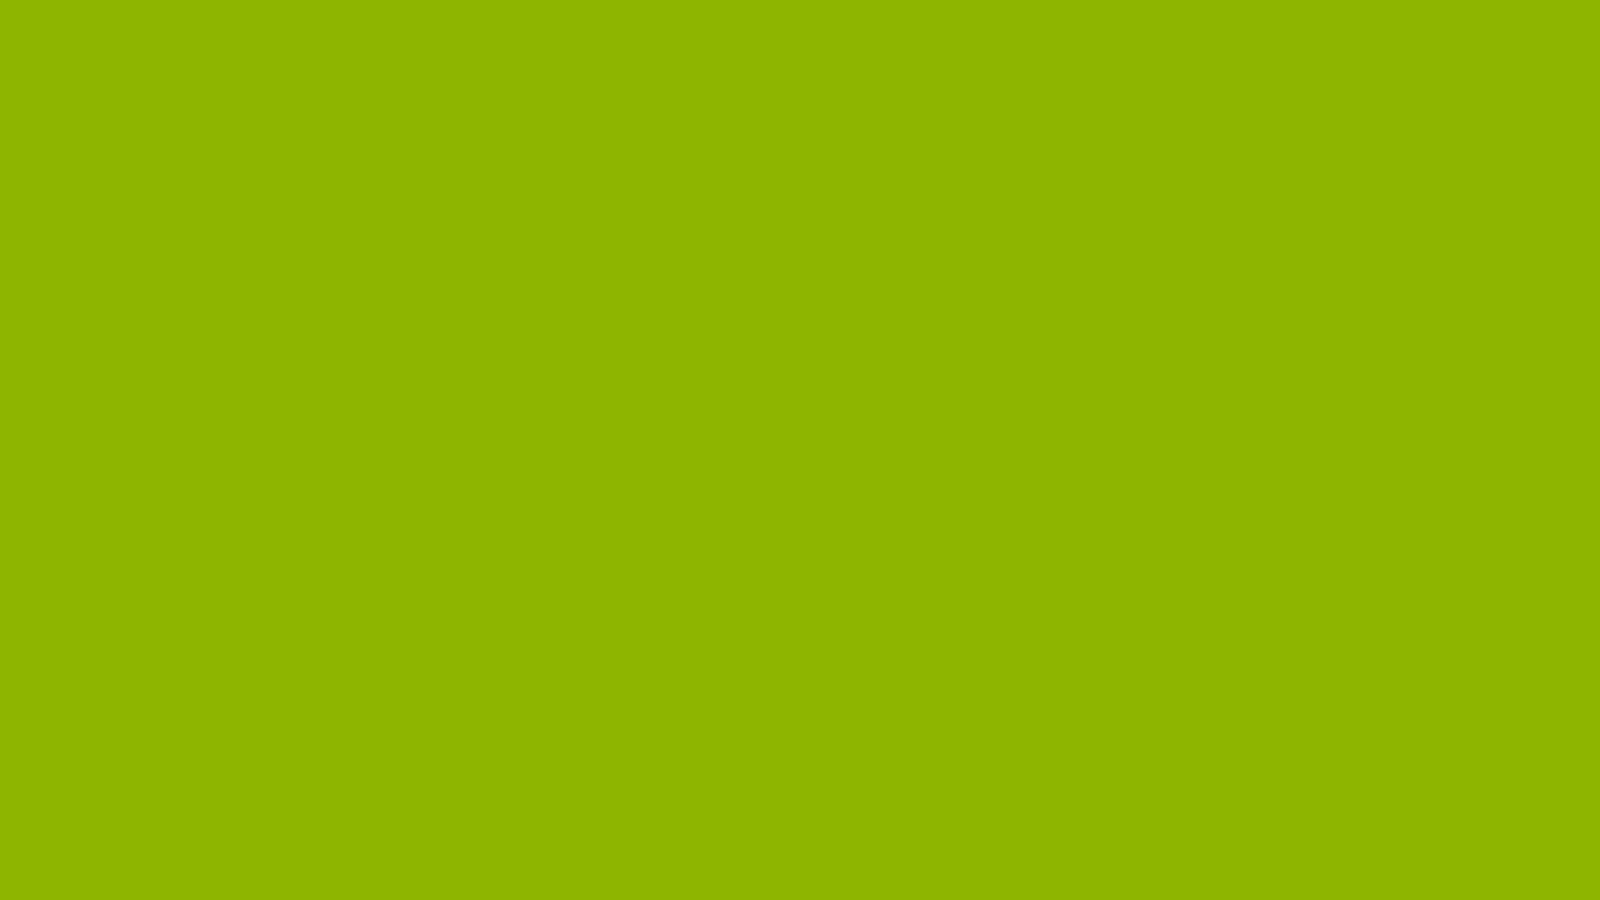 1600x900 Apple Green Solid Color Background